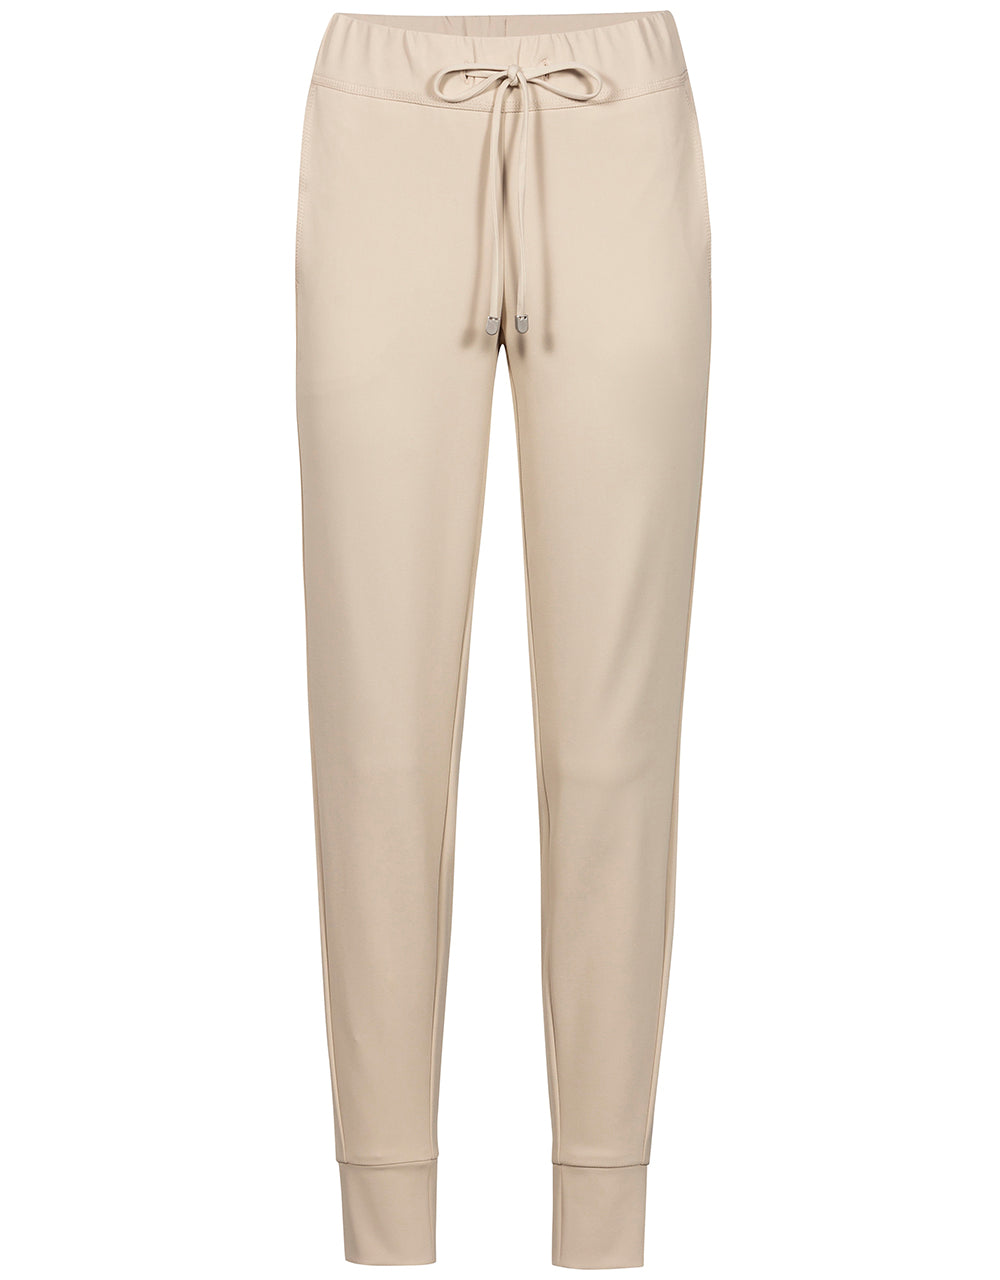 Jogger ROXANA2 von Stehmann in High Tec Bi-Stretch Ware in beige